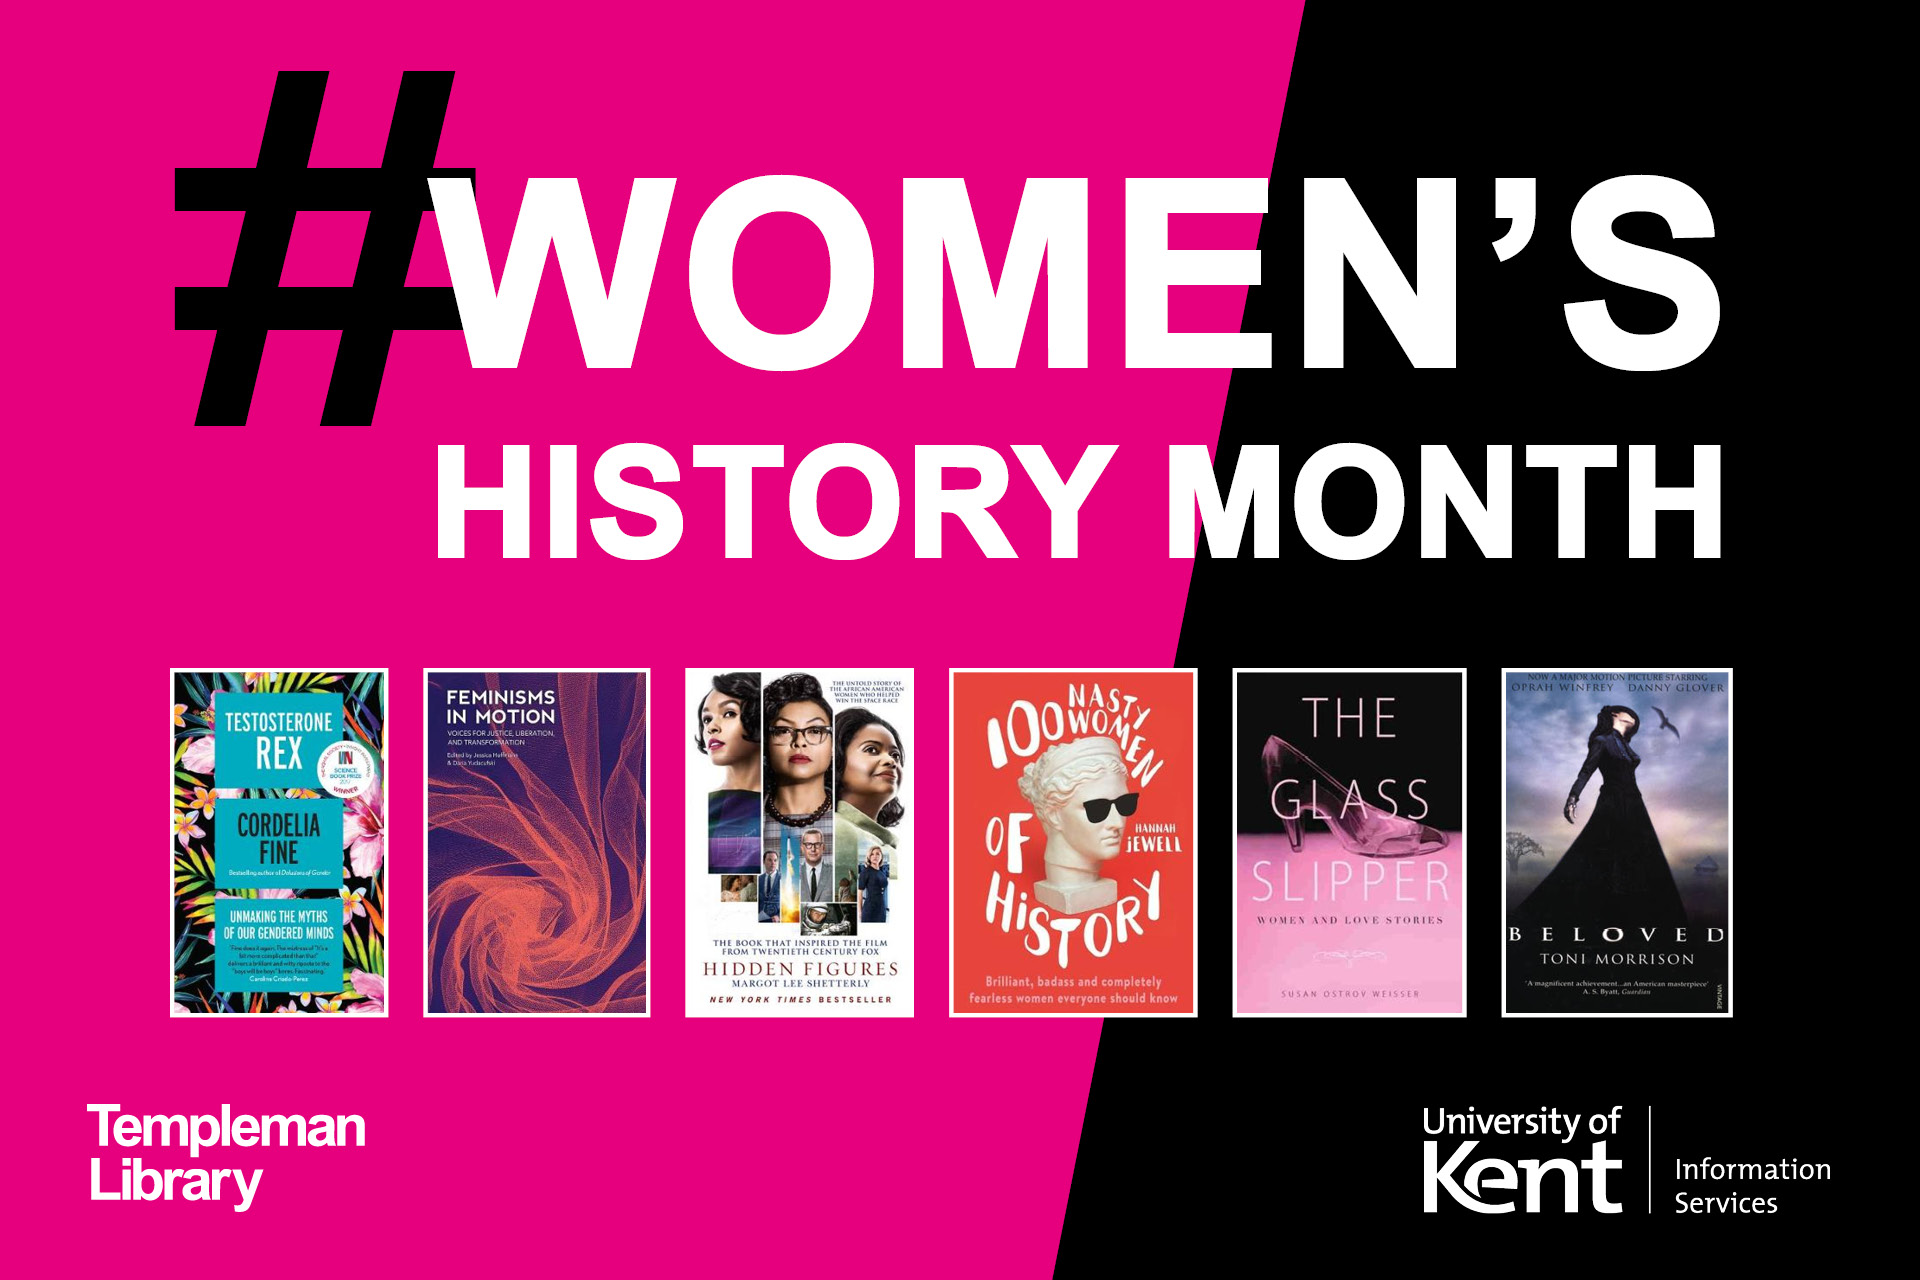 Women's History Month - featuring book covers from the Women's History Month recommended resources list